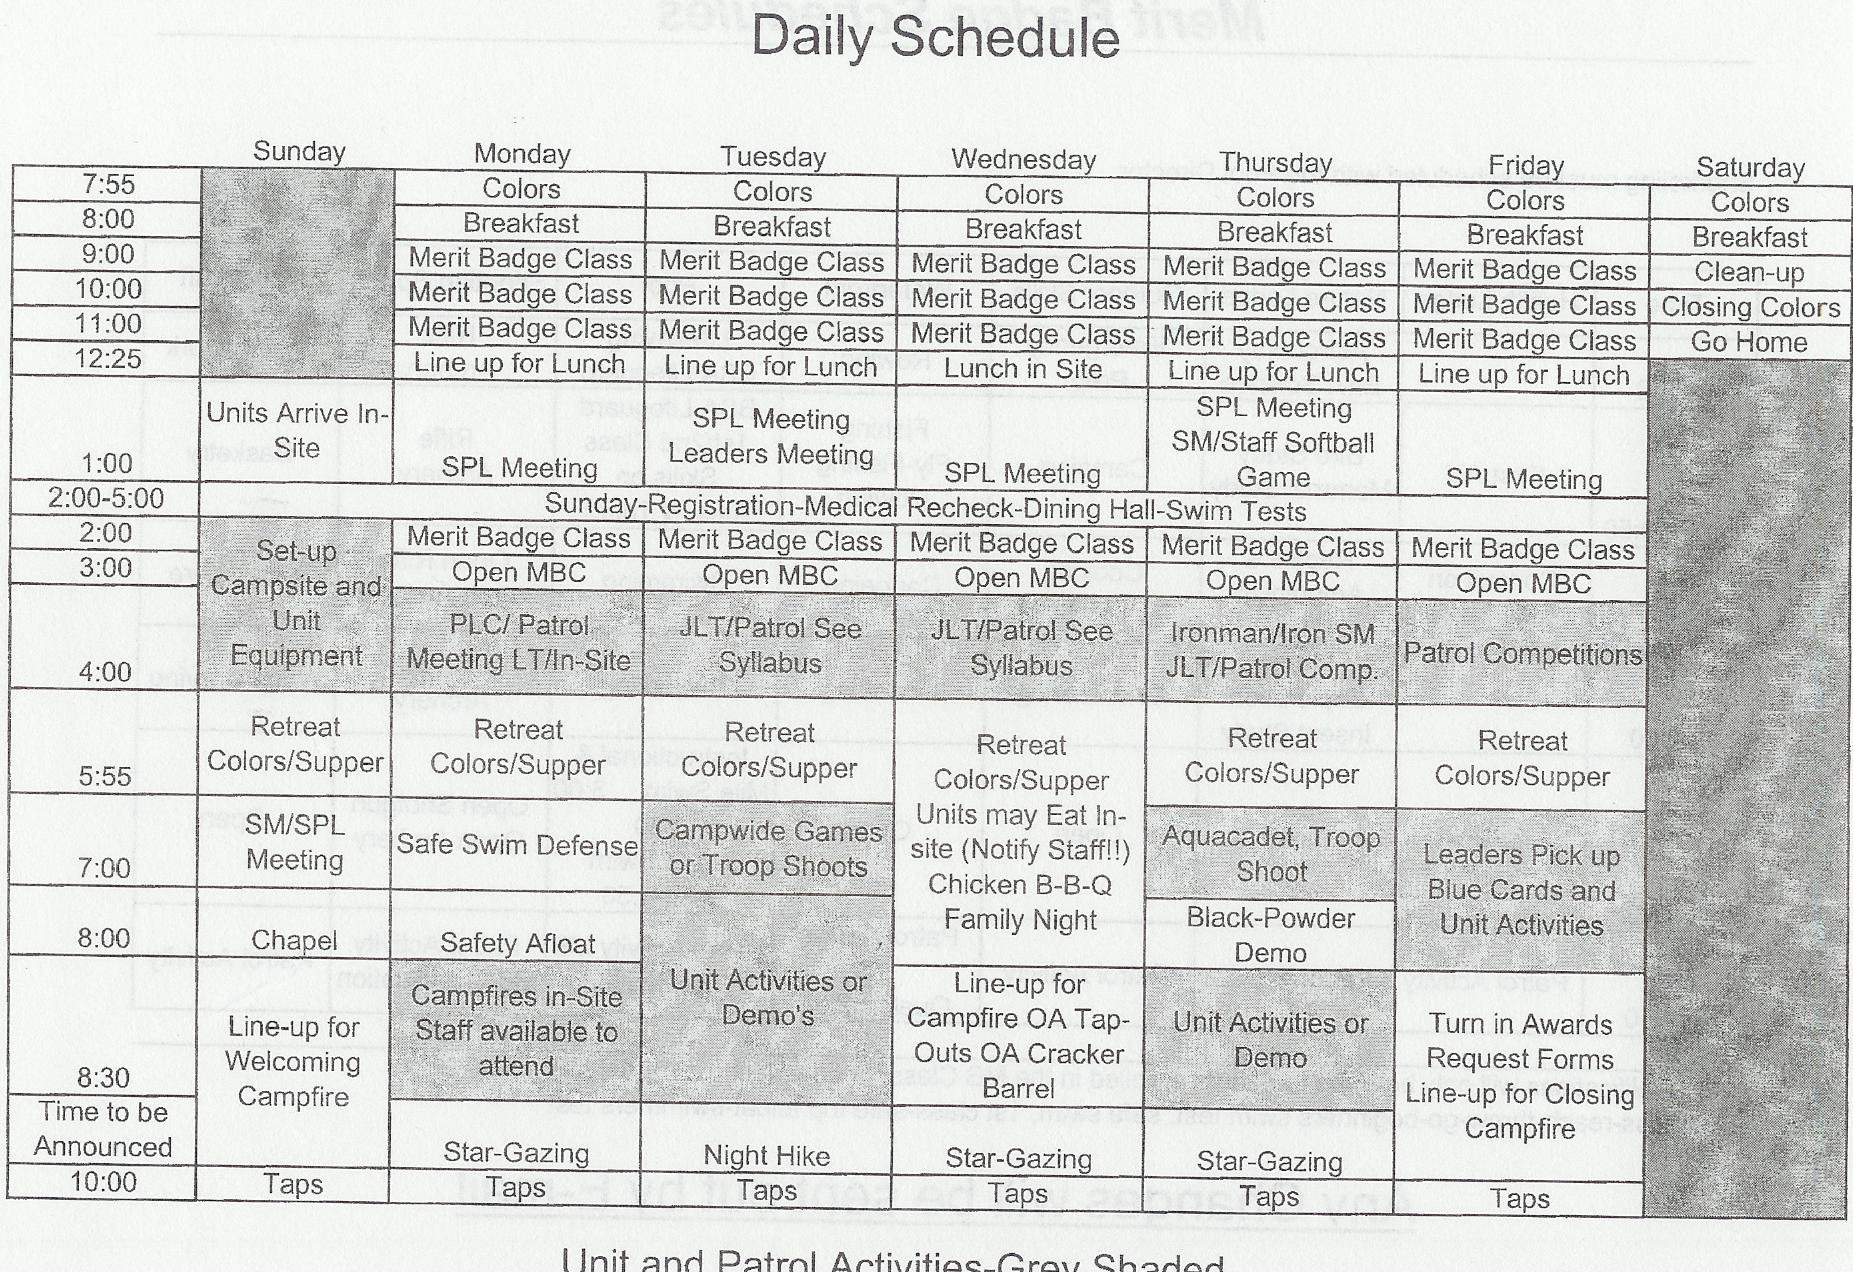 Summer Camp Schedules Template Best Of Seven Mountains Summer Camp 2004 General Camp Schedule